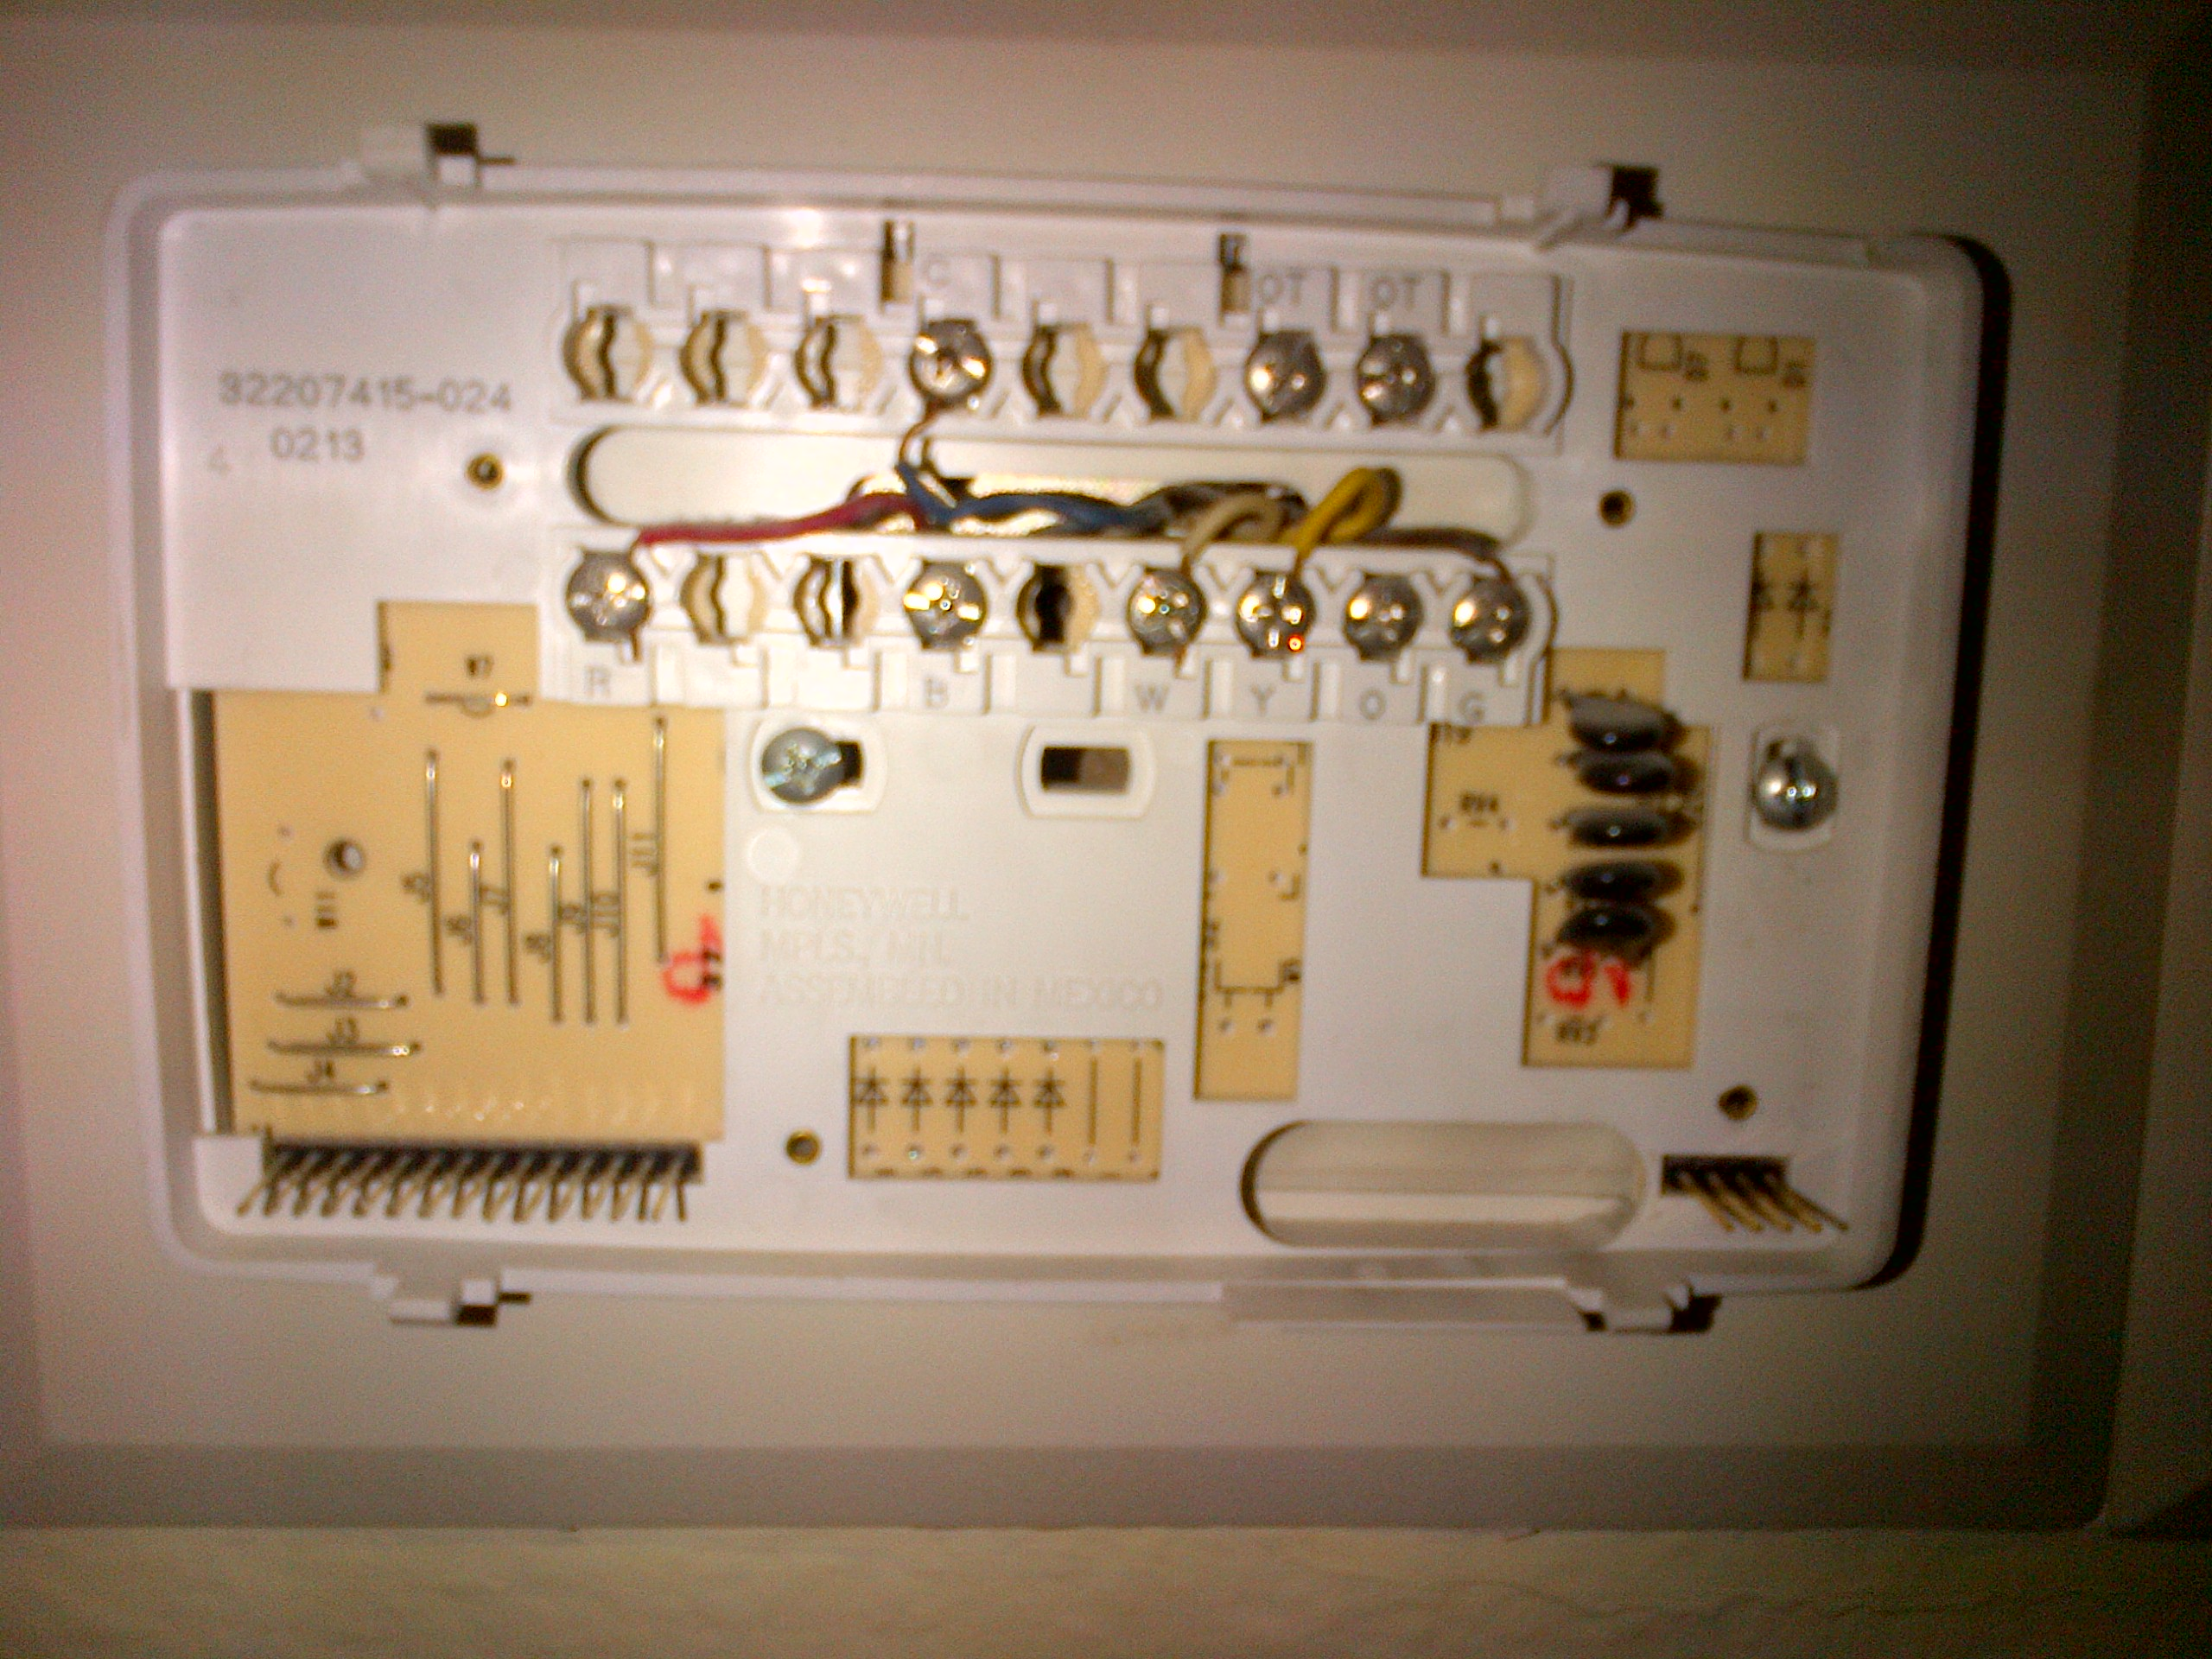 I Have Rudd Silhouette 2 Gas Furnace With Electric Ignition